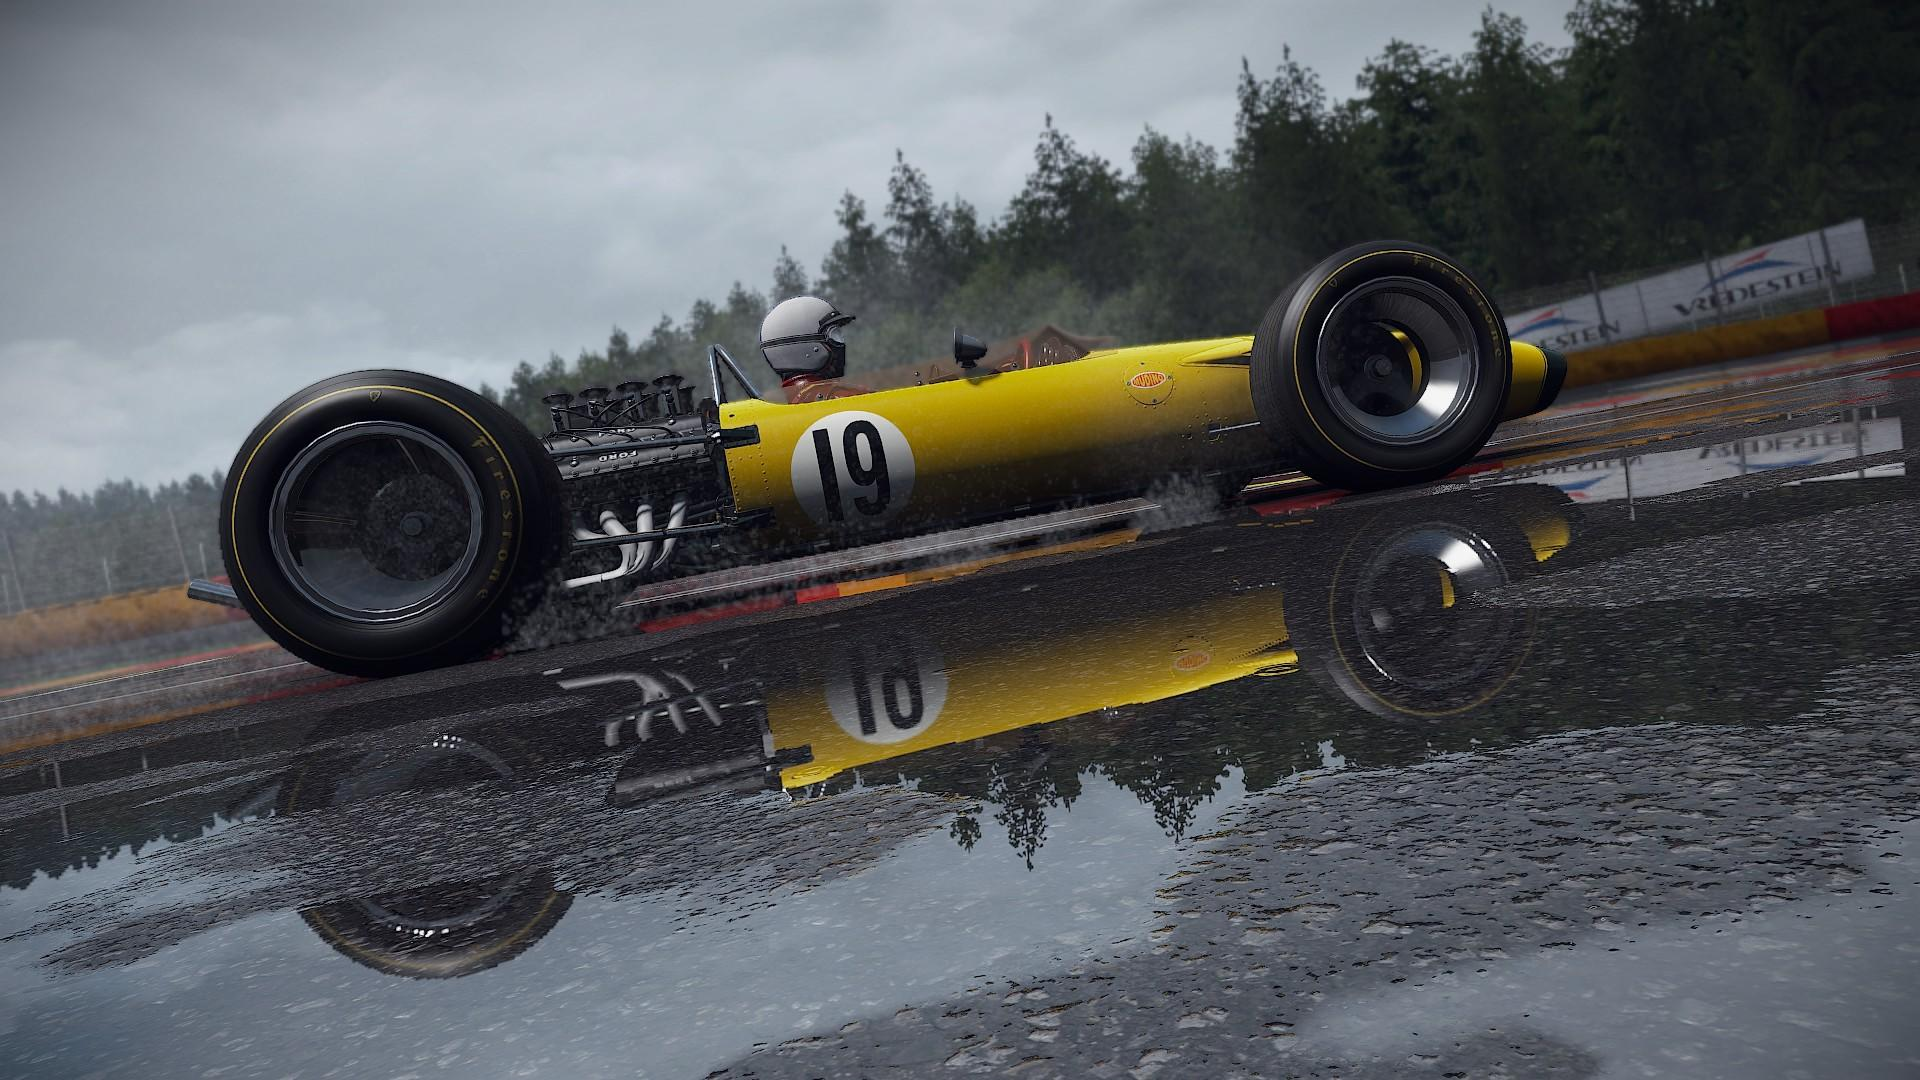 Project Cars Wii U Version Struggling, May Shift to Nintendo's Next Console